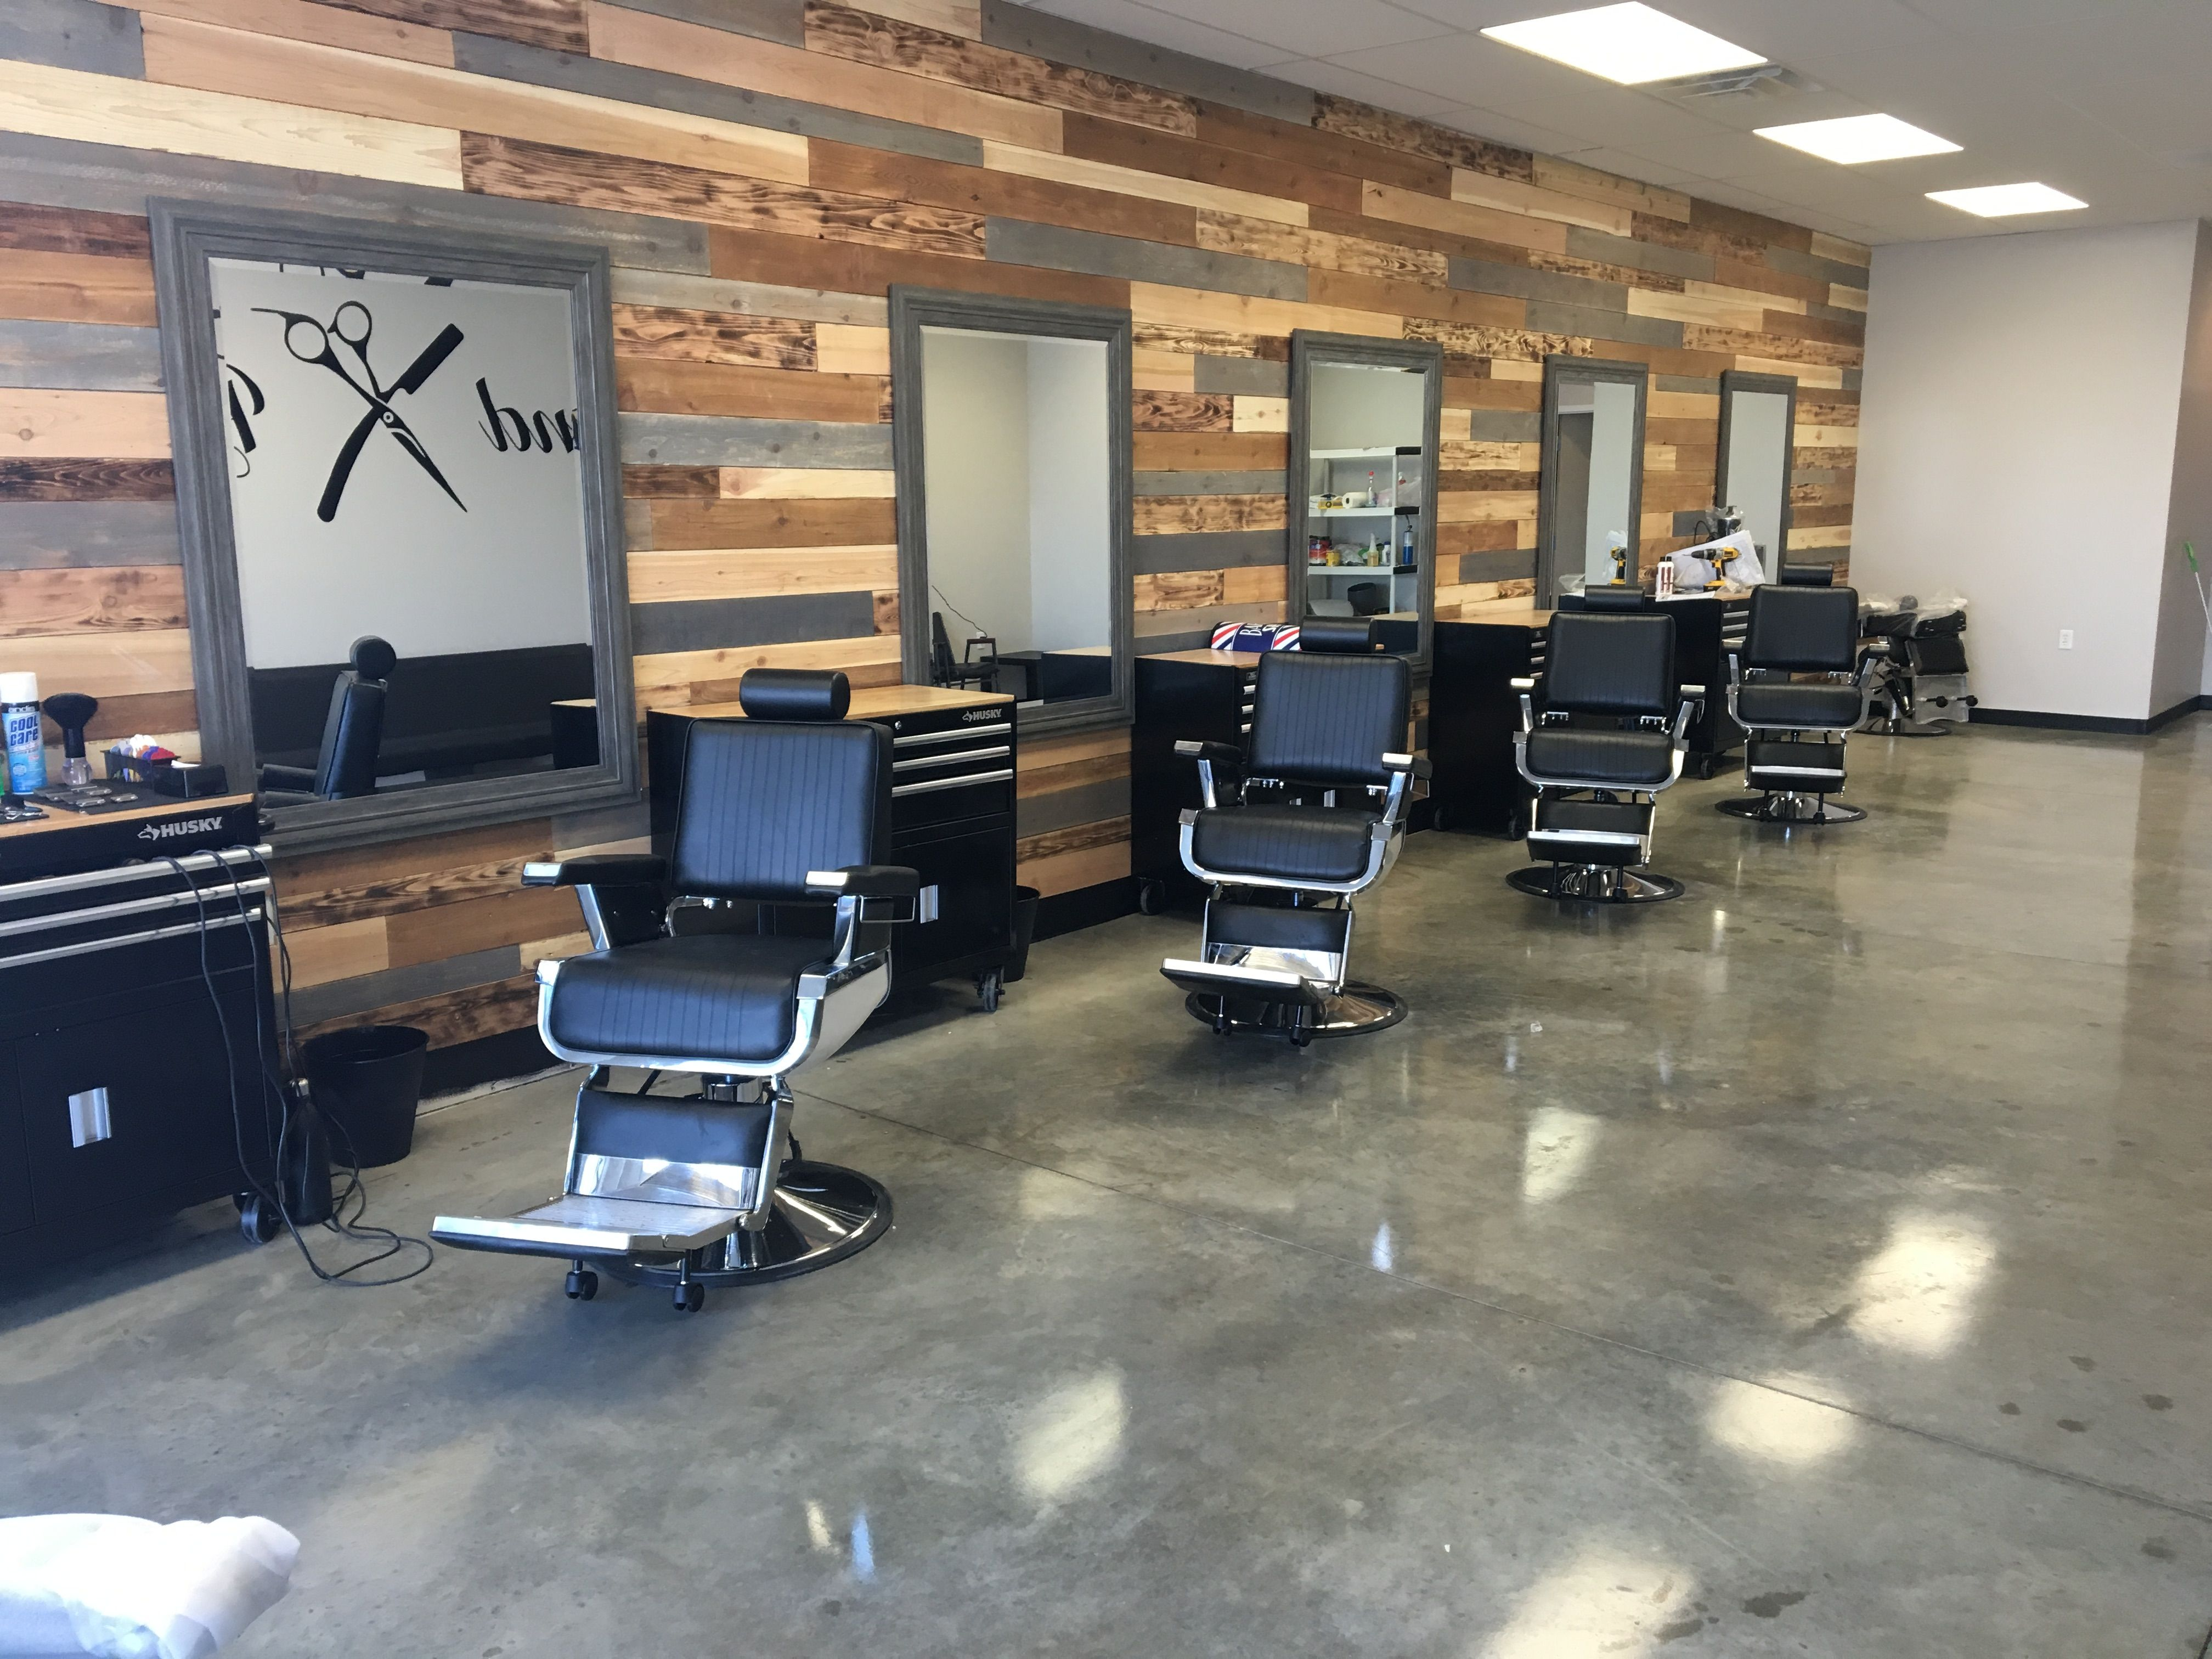 Westend Barbers In West Valley City Utah With Images Barber